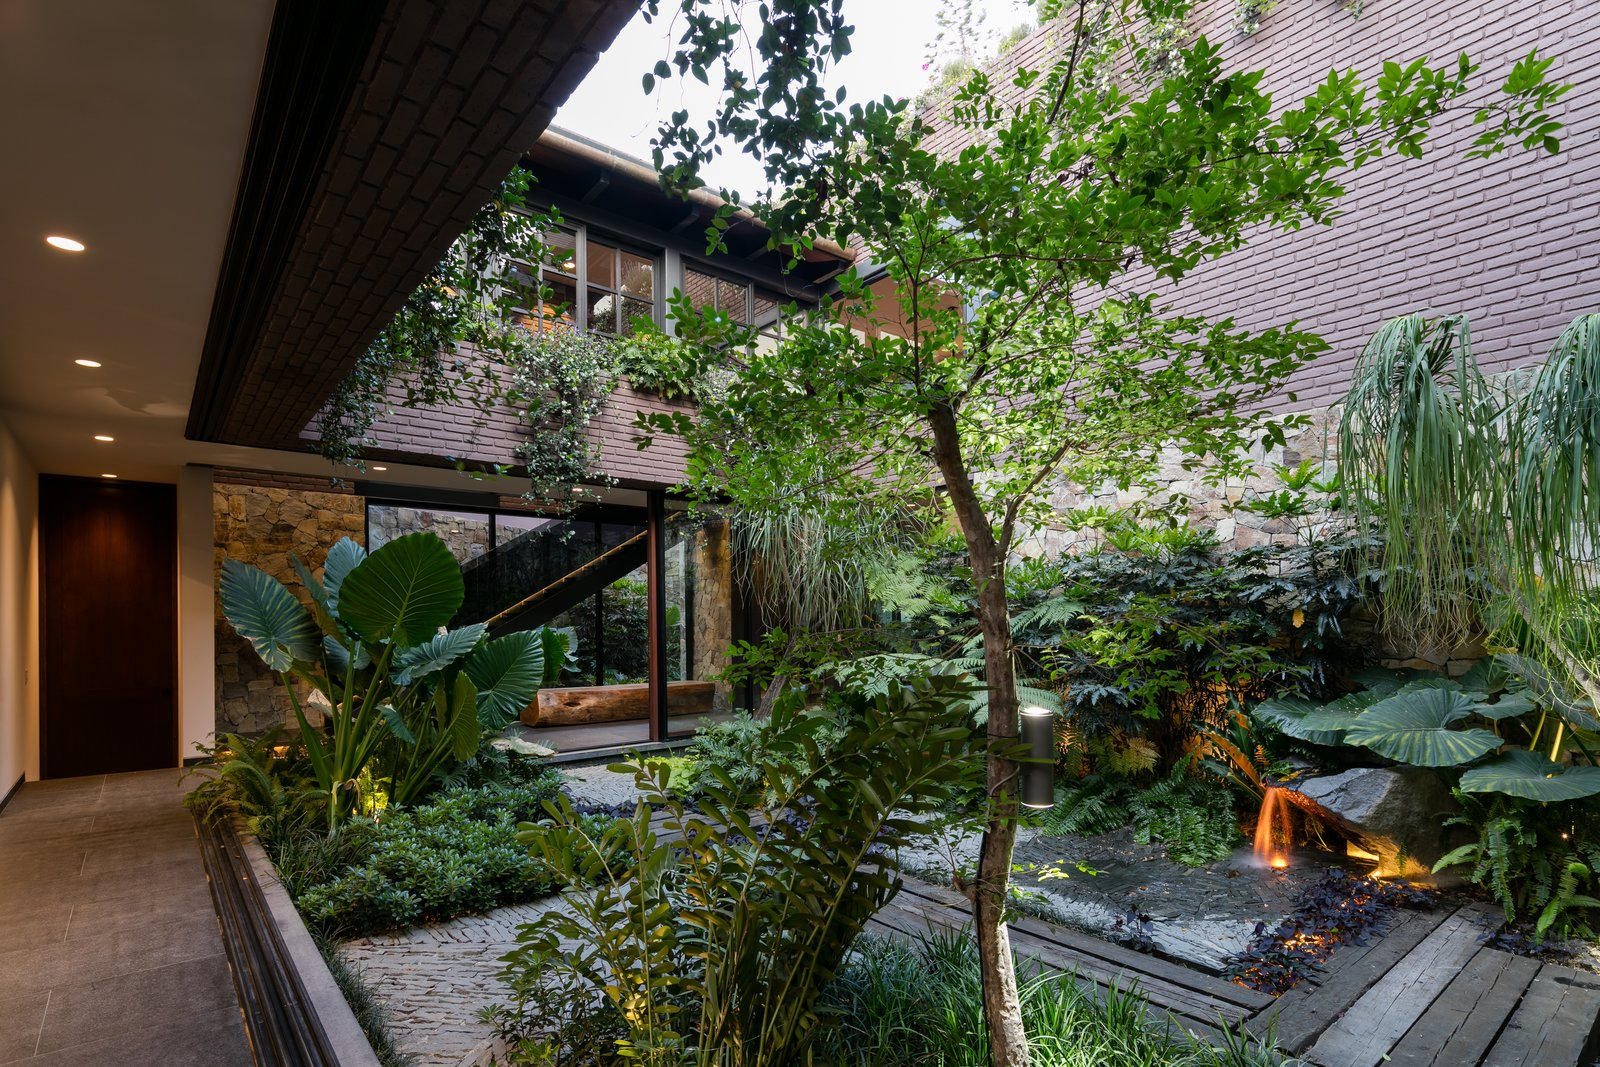 Flowers, Shrubs, Grass, Trees, Garden, Standard Construction Pools, Tubs, Shower, Landscape Lighting, Metal Fences, Wall, and Wood Fences, Wall  Casa OM1